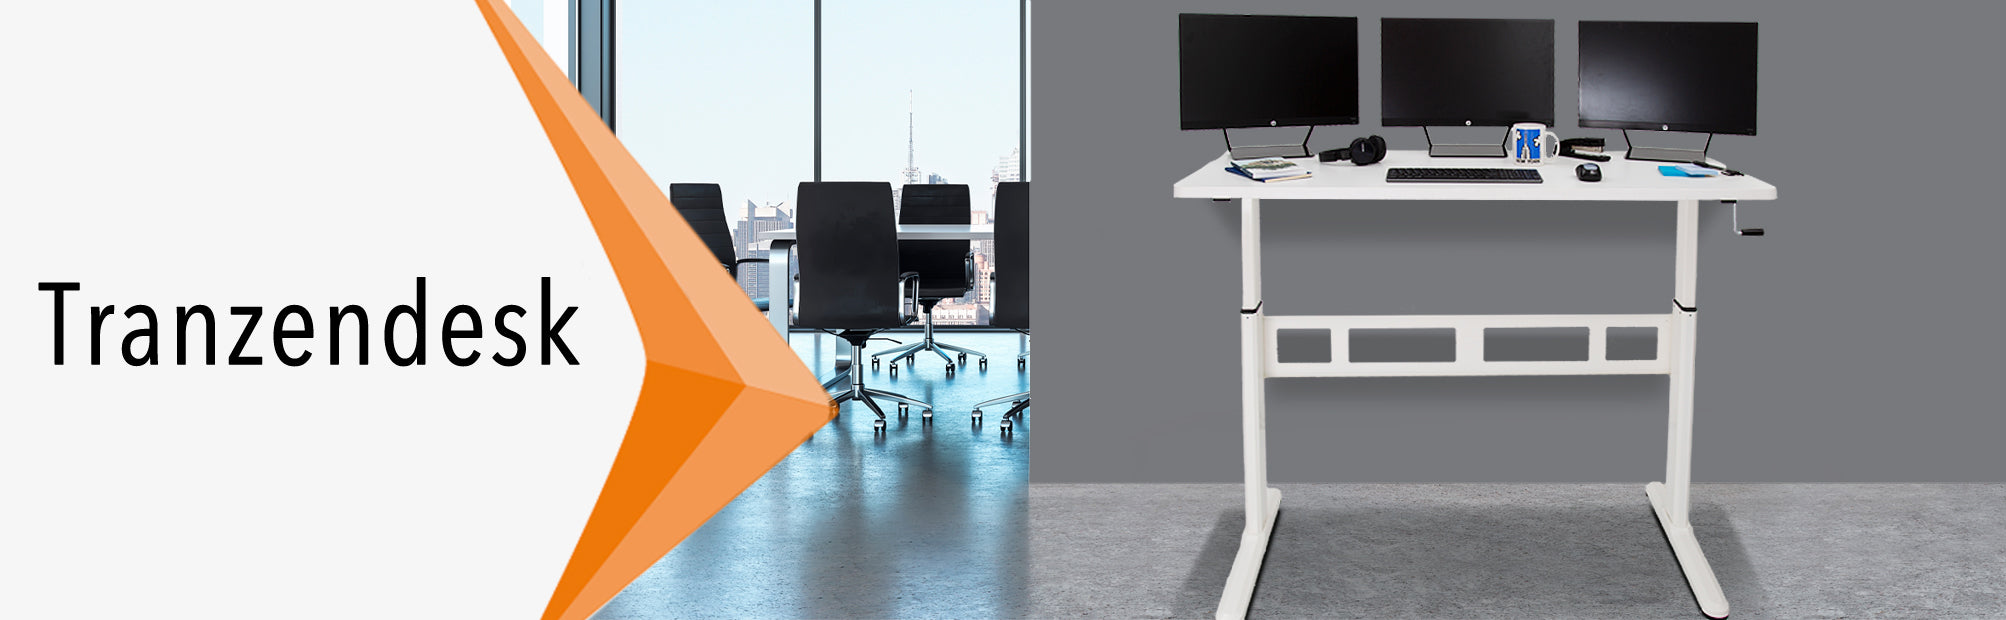 Stand Steady Tranzendesk 55 Inch Standing Desk with White Desktop